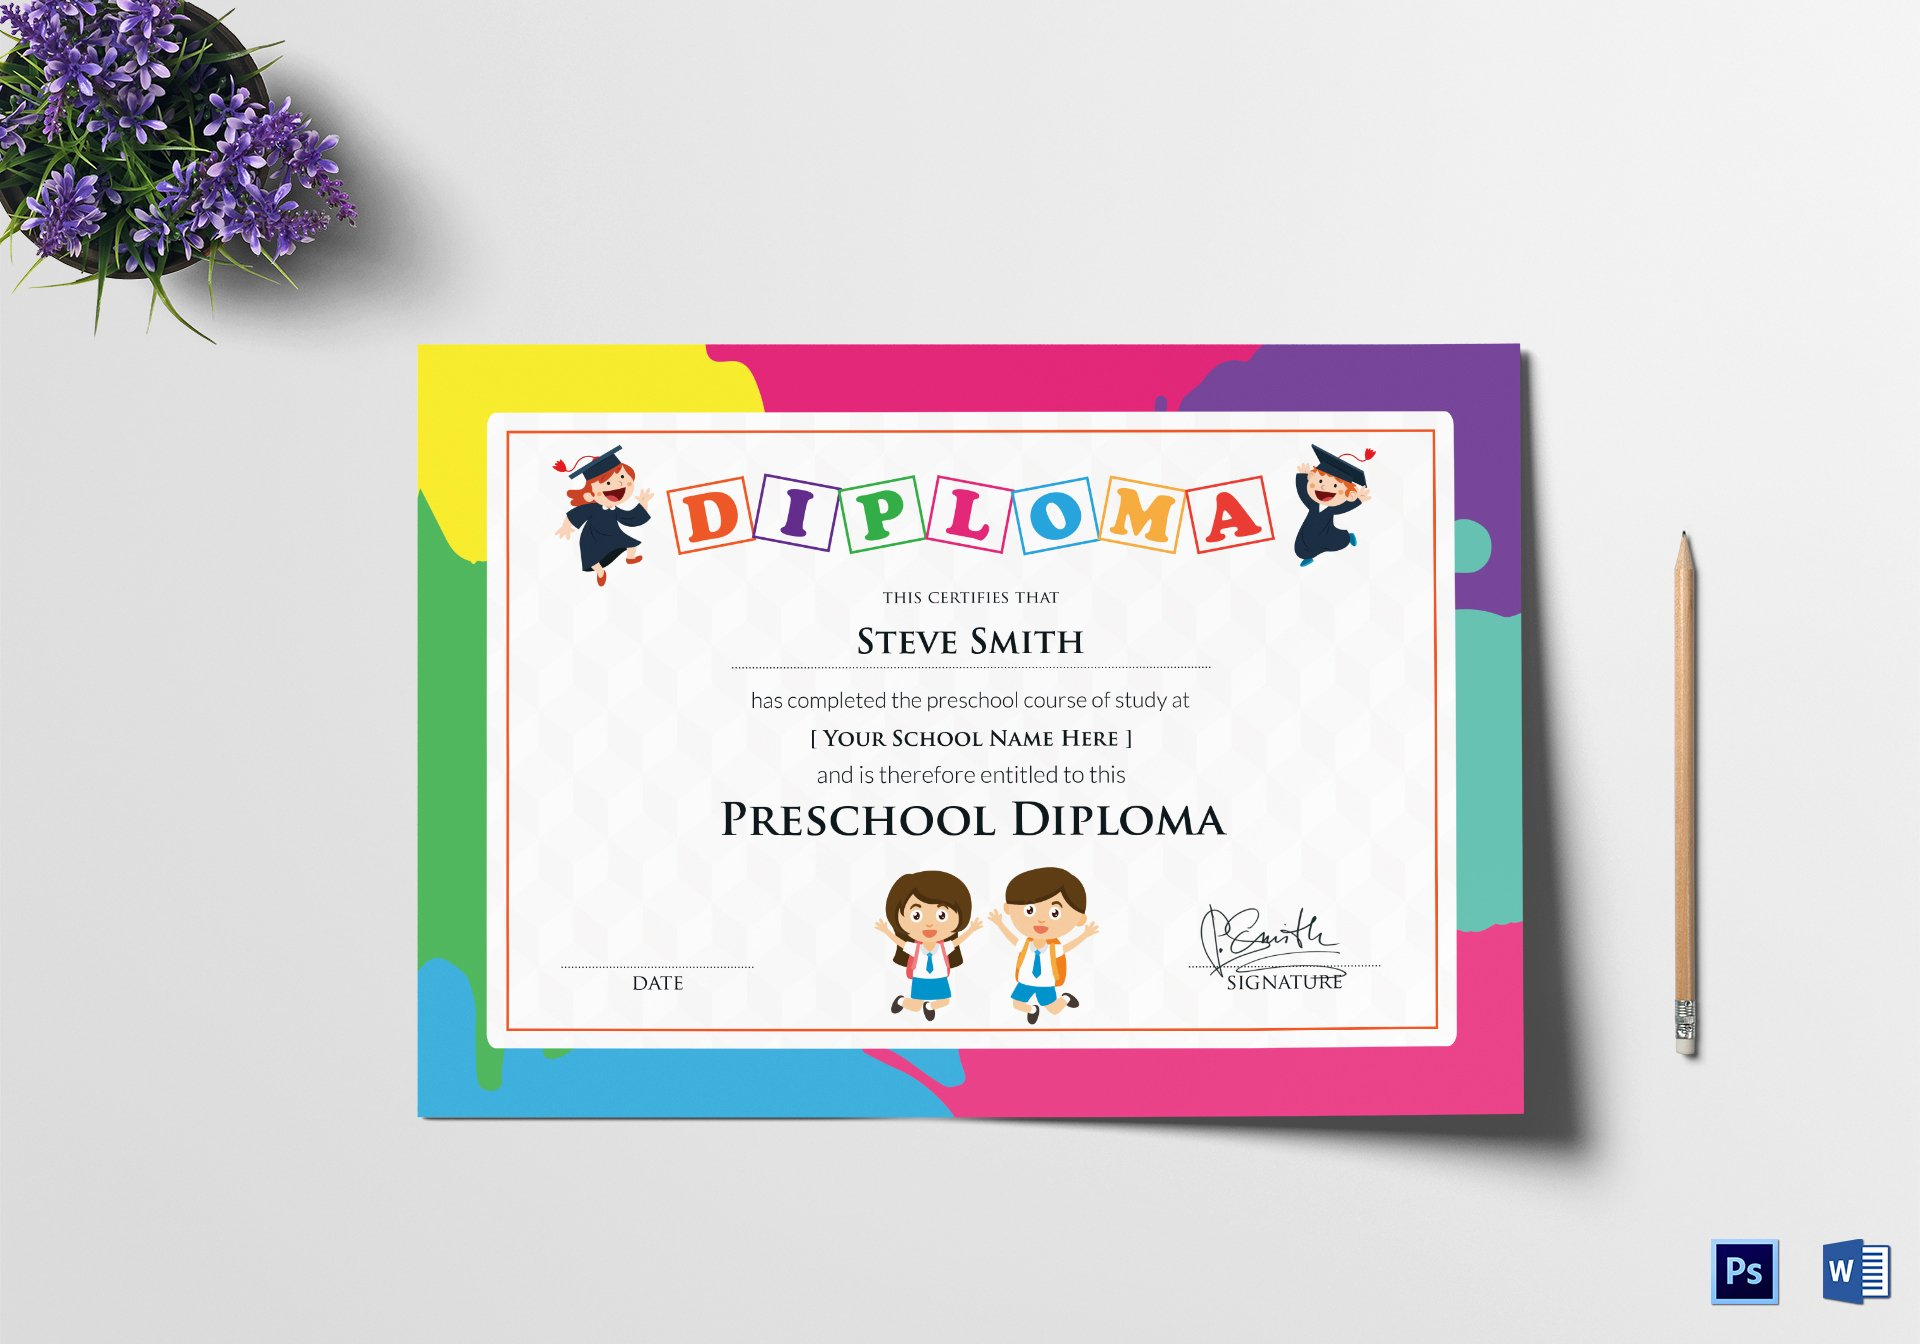 Preschool Certificate Templates Free Lovely Preschool Diploma Certificate Design Template In Psd Word